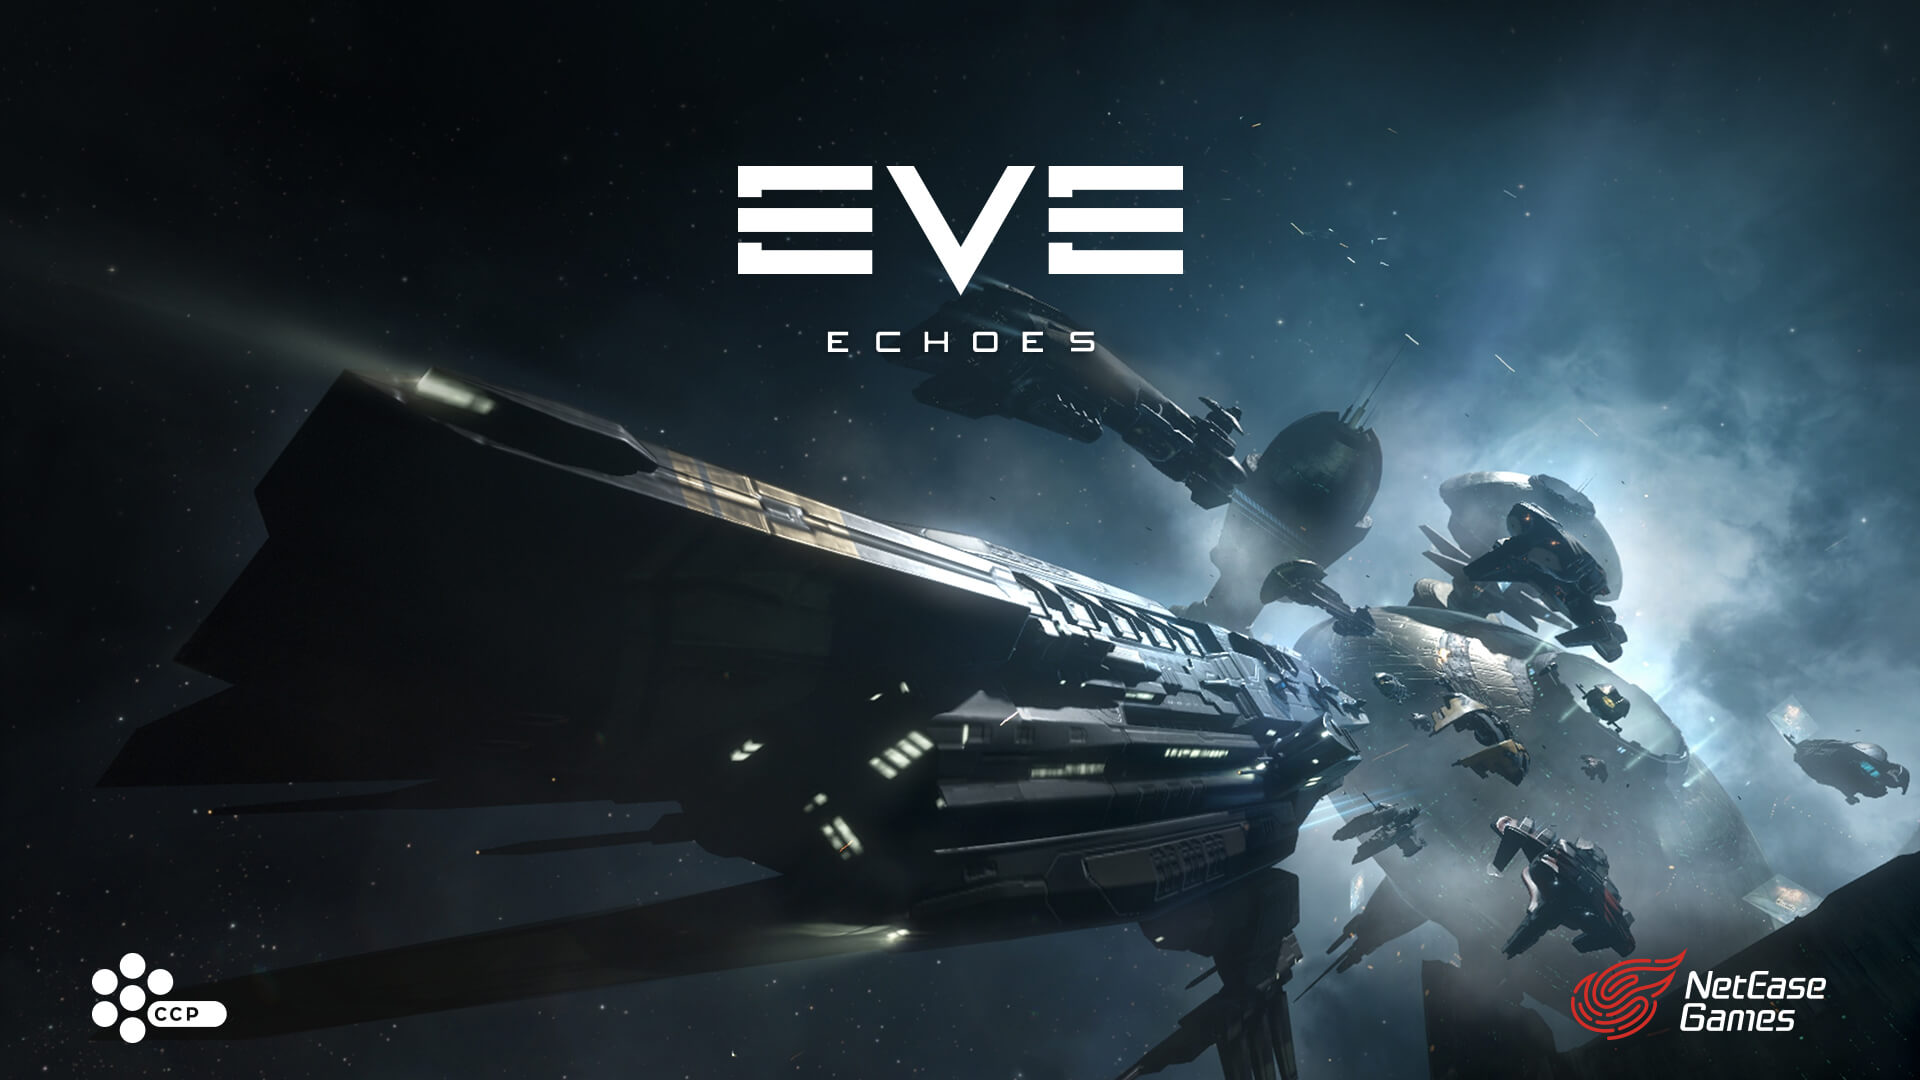 [Update: Full Release, servers go online tomorrow] EVE Echoes Brings 8,000 solar systems to mobile. Final closed beta next month